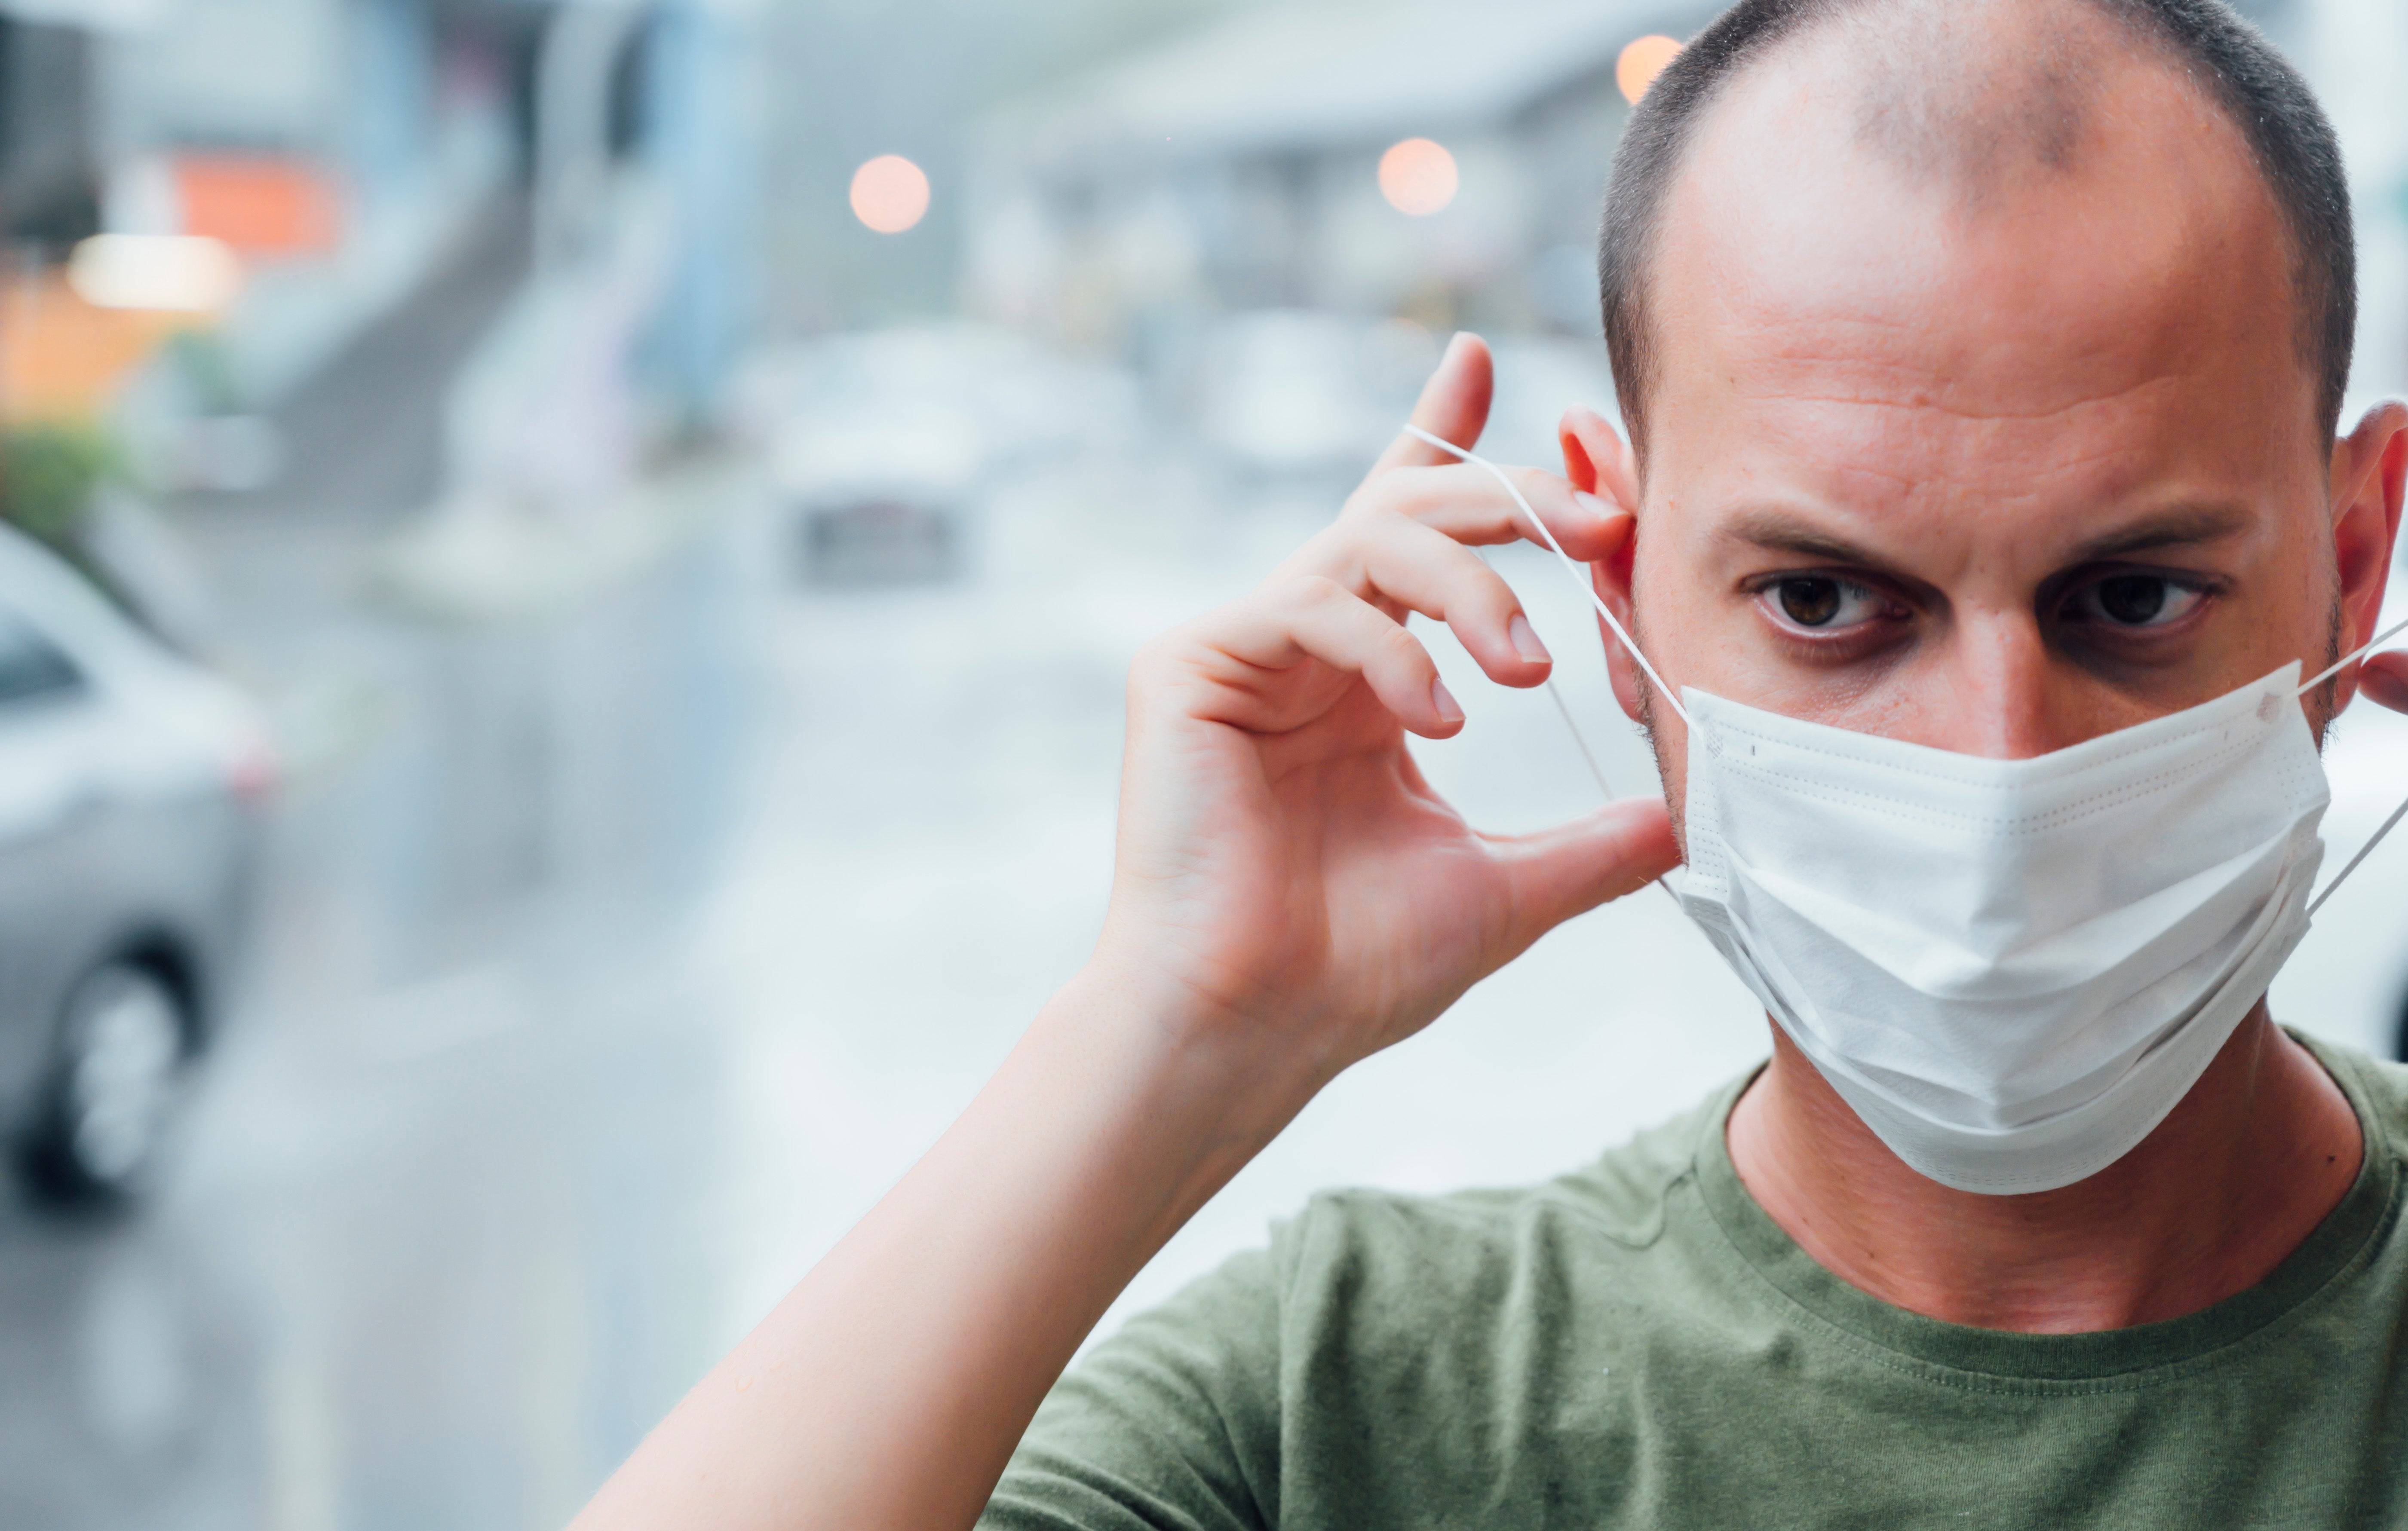 Who should wear face masks during the pandemic?